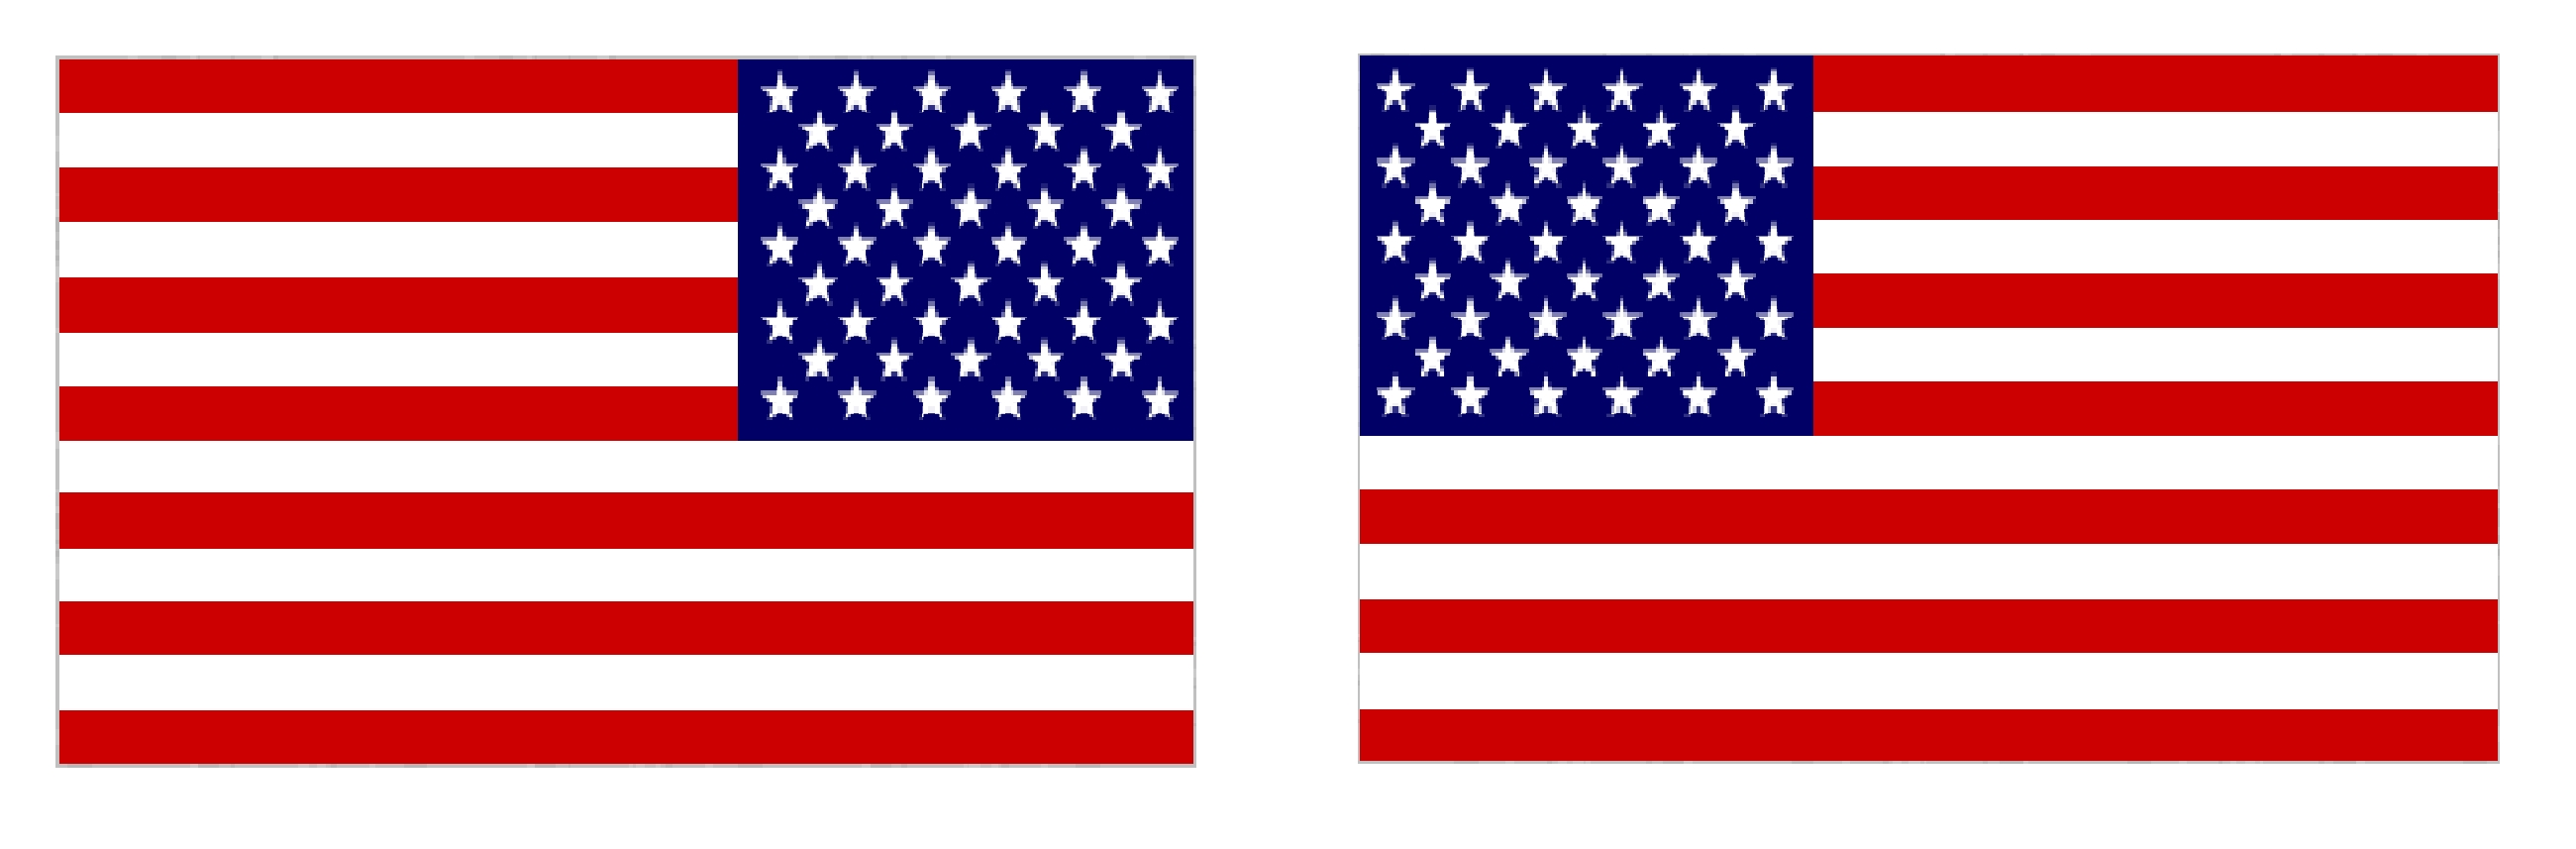 Flag clipart printable. Best of us design